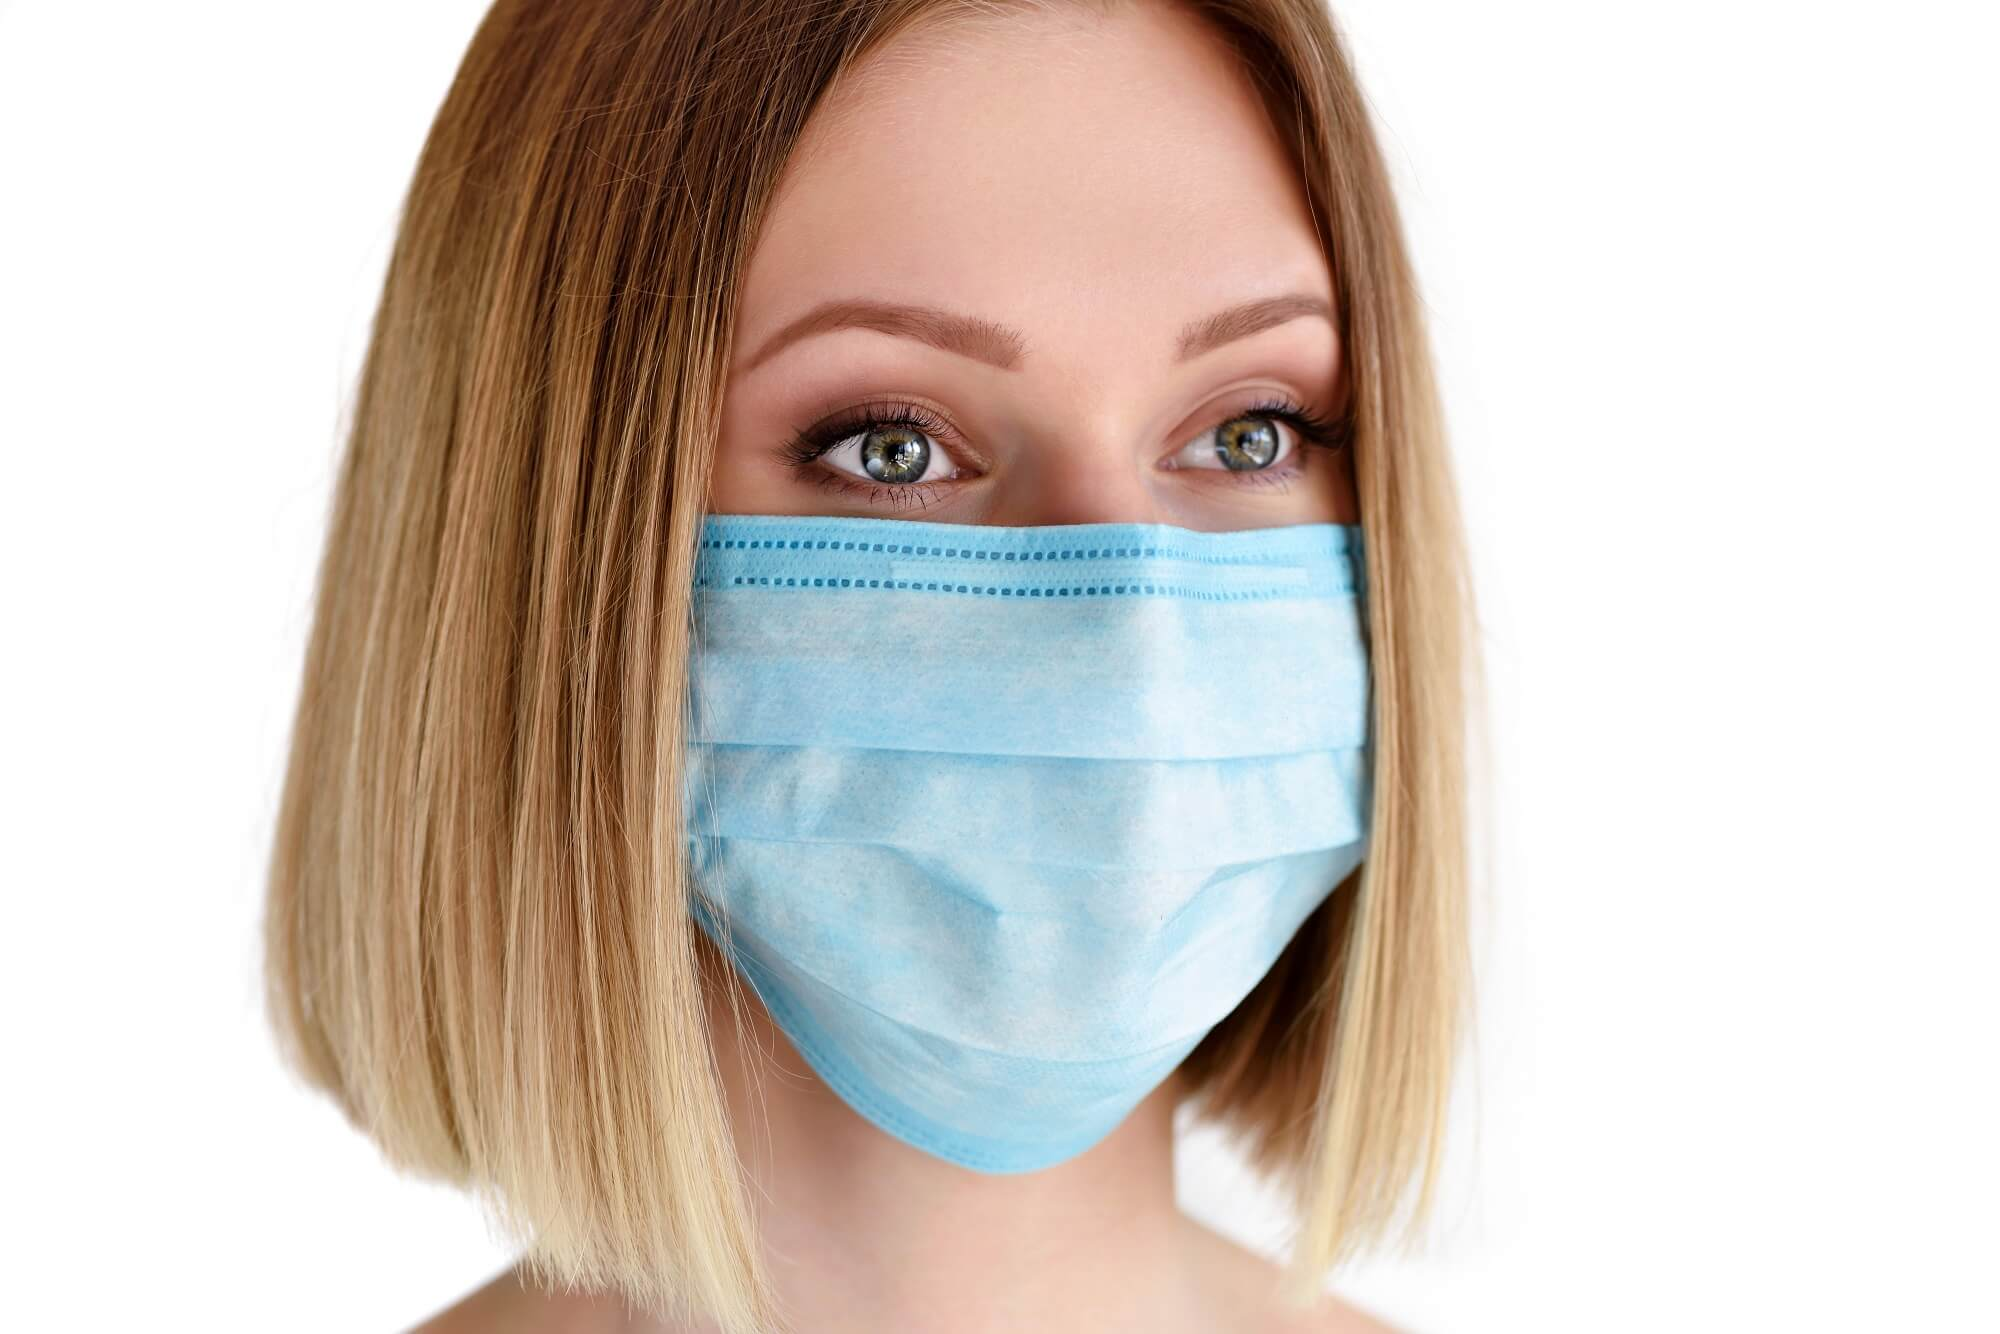 young woman in medical mask